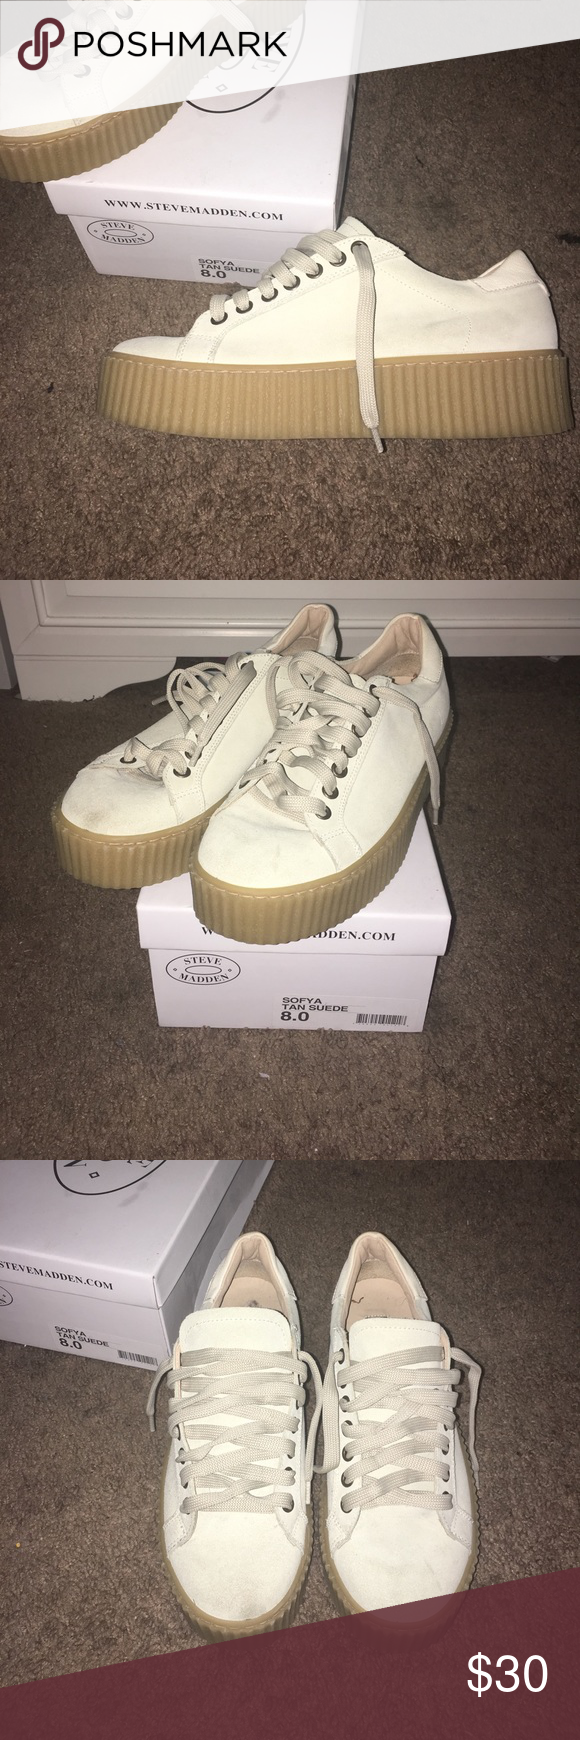 Steve Madden Tan Suede Sofya Shoes! Worn three times, size 8.0 , good condition, minor smudges on front of shoe. (barley noticeable) Steve Madden Shoes Sneakers